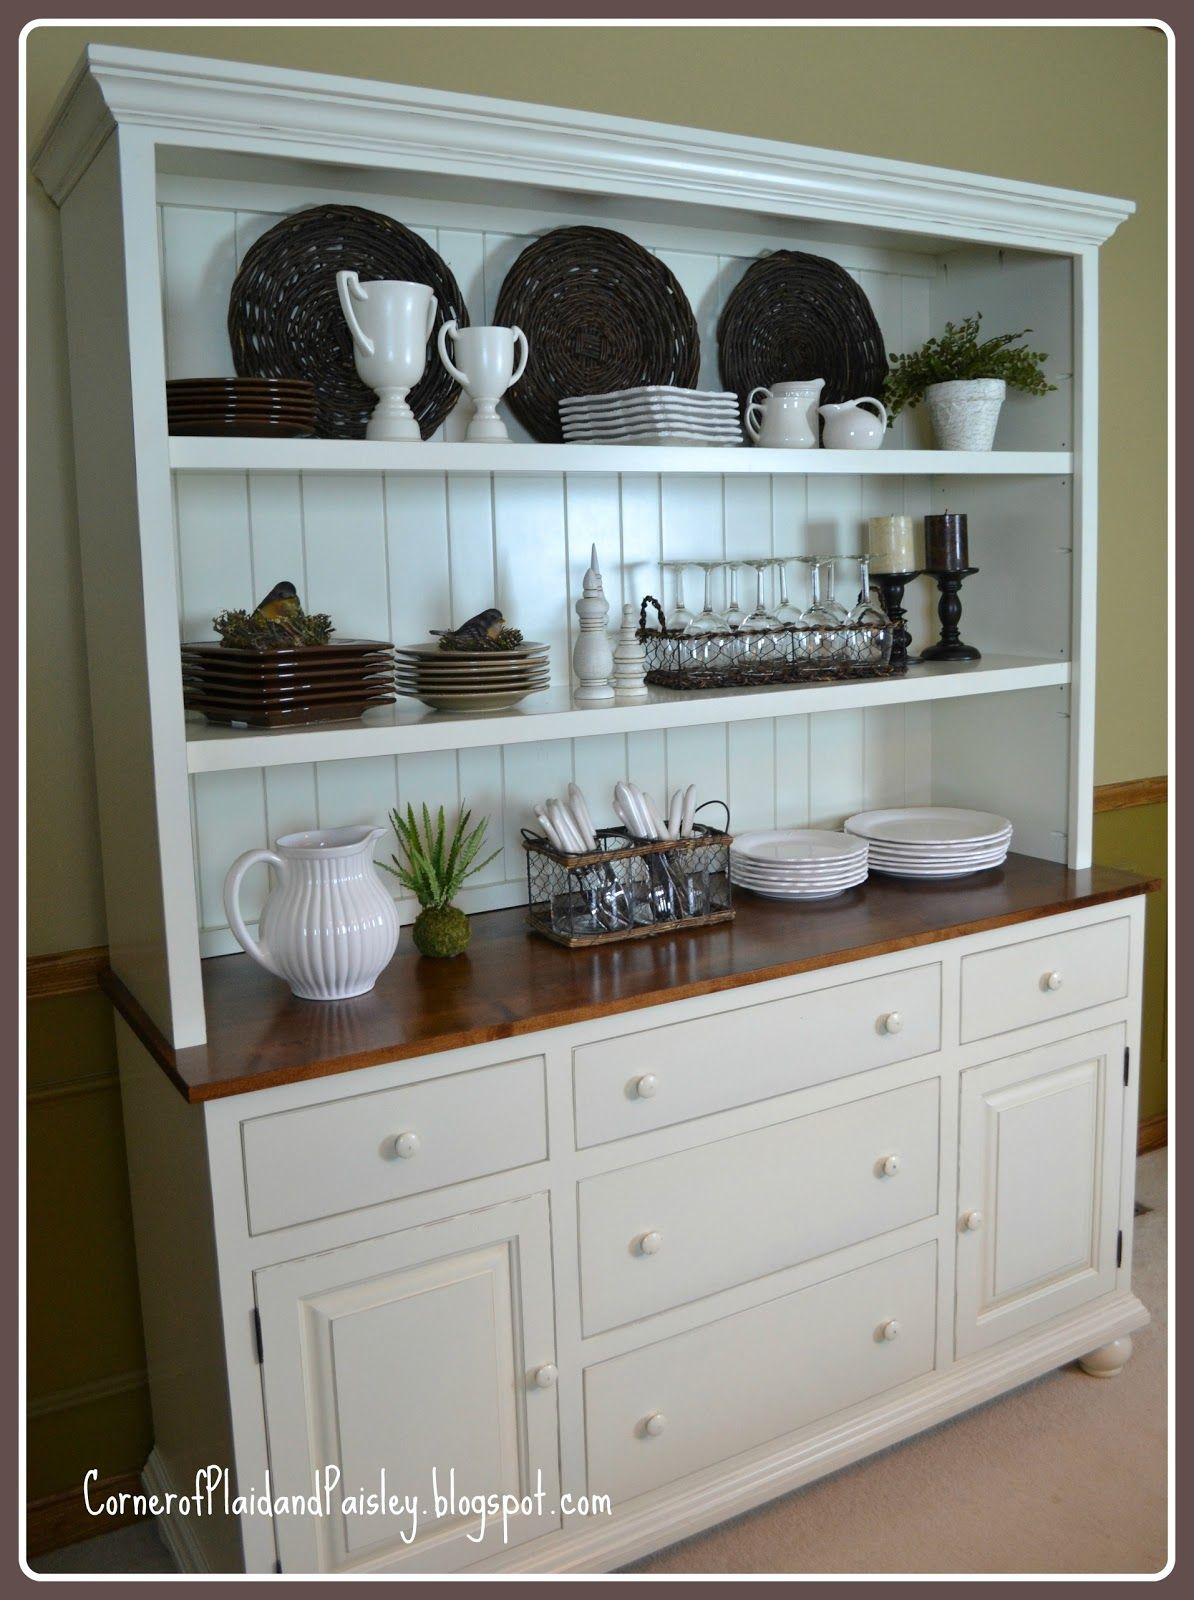 Bon Hutch Images | ... Of Plaid And Paisley: Better Than A New Car   New Dining  Room Hutch